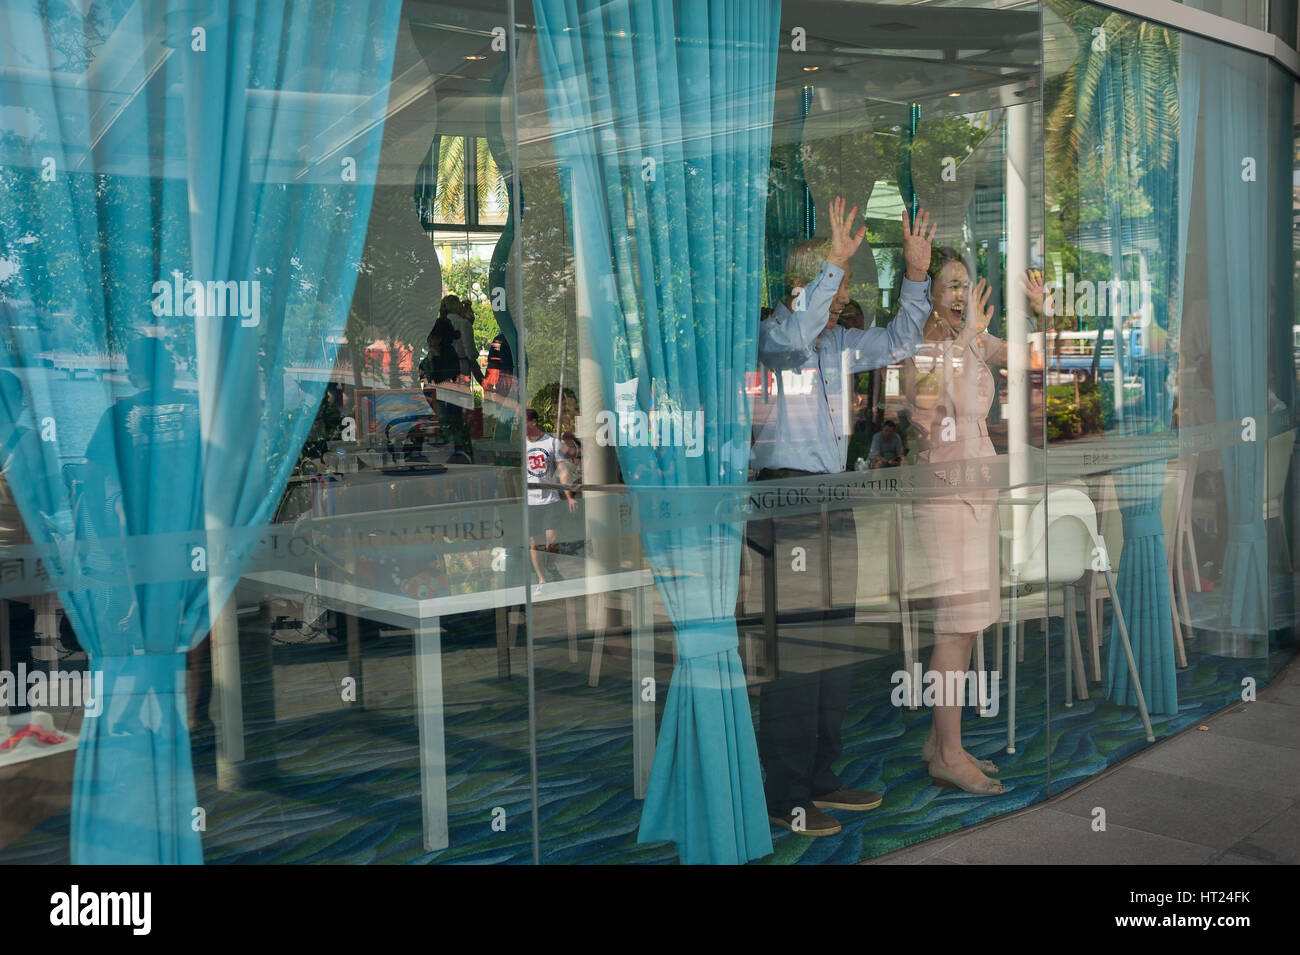 02.10.2016, Singapore, Republic of Singapore - People wave at children on the street from inside a restaurant at Stock Photo